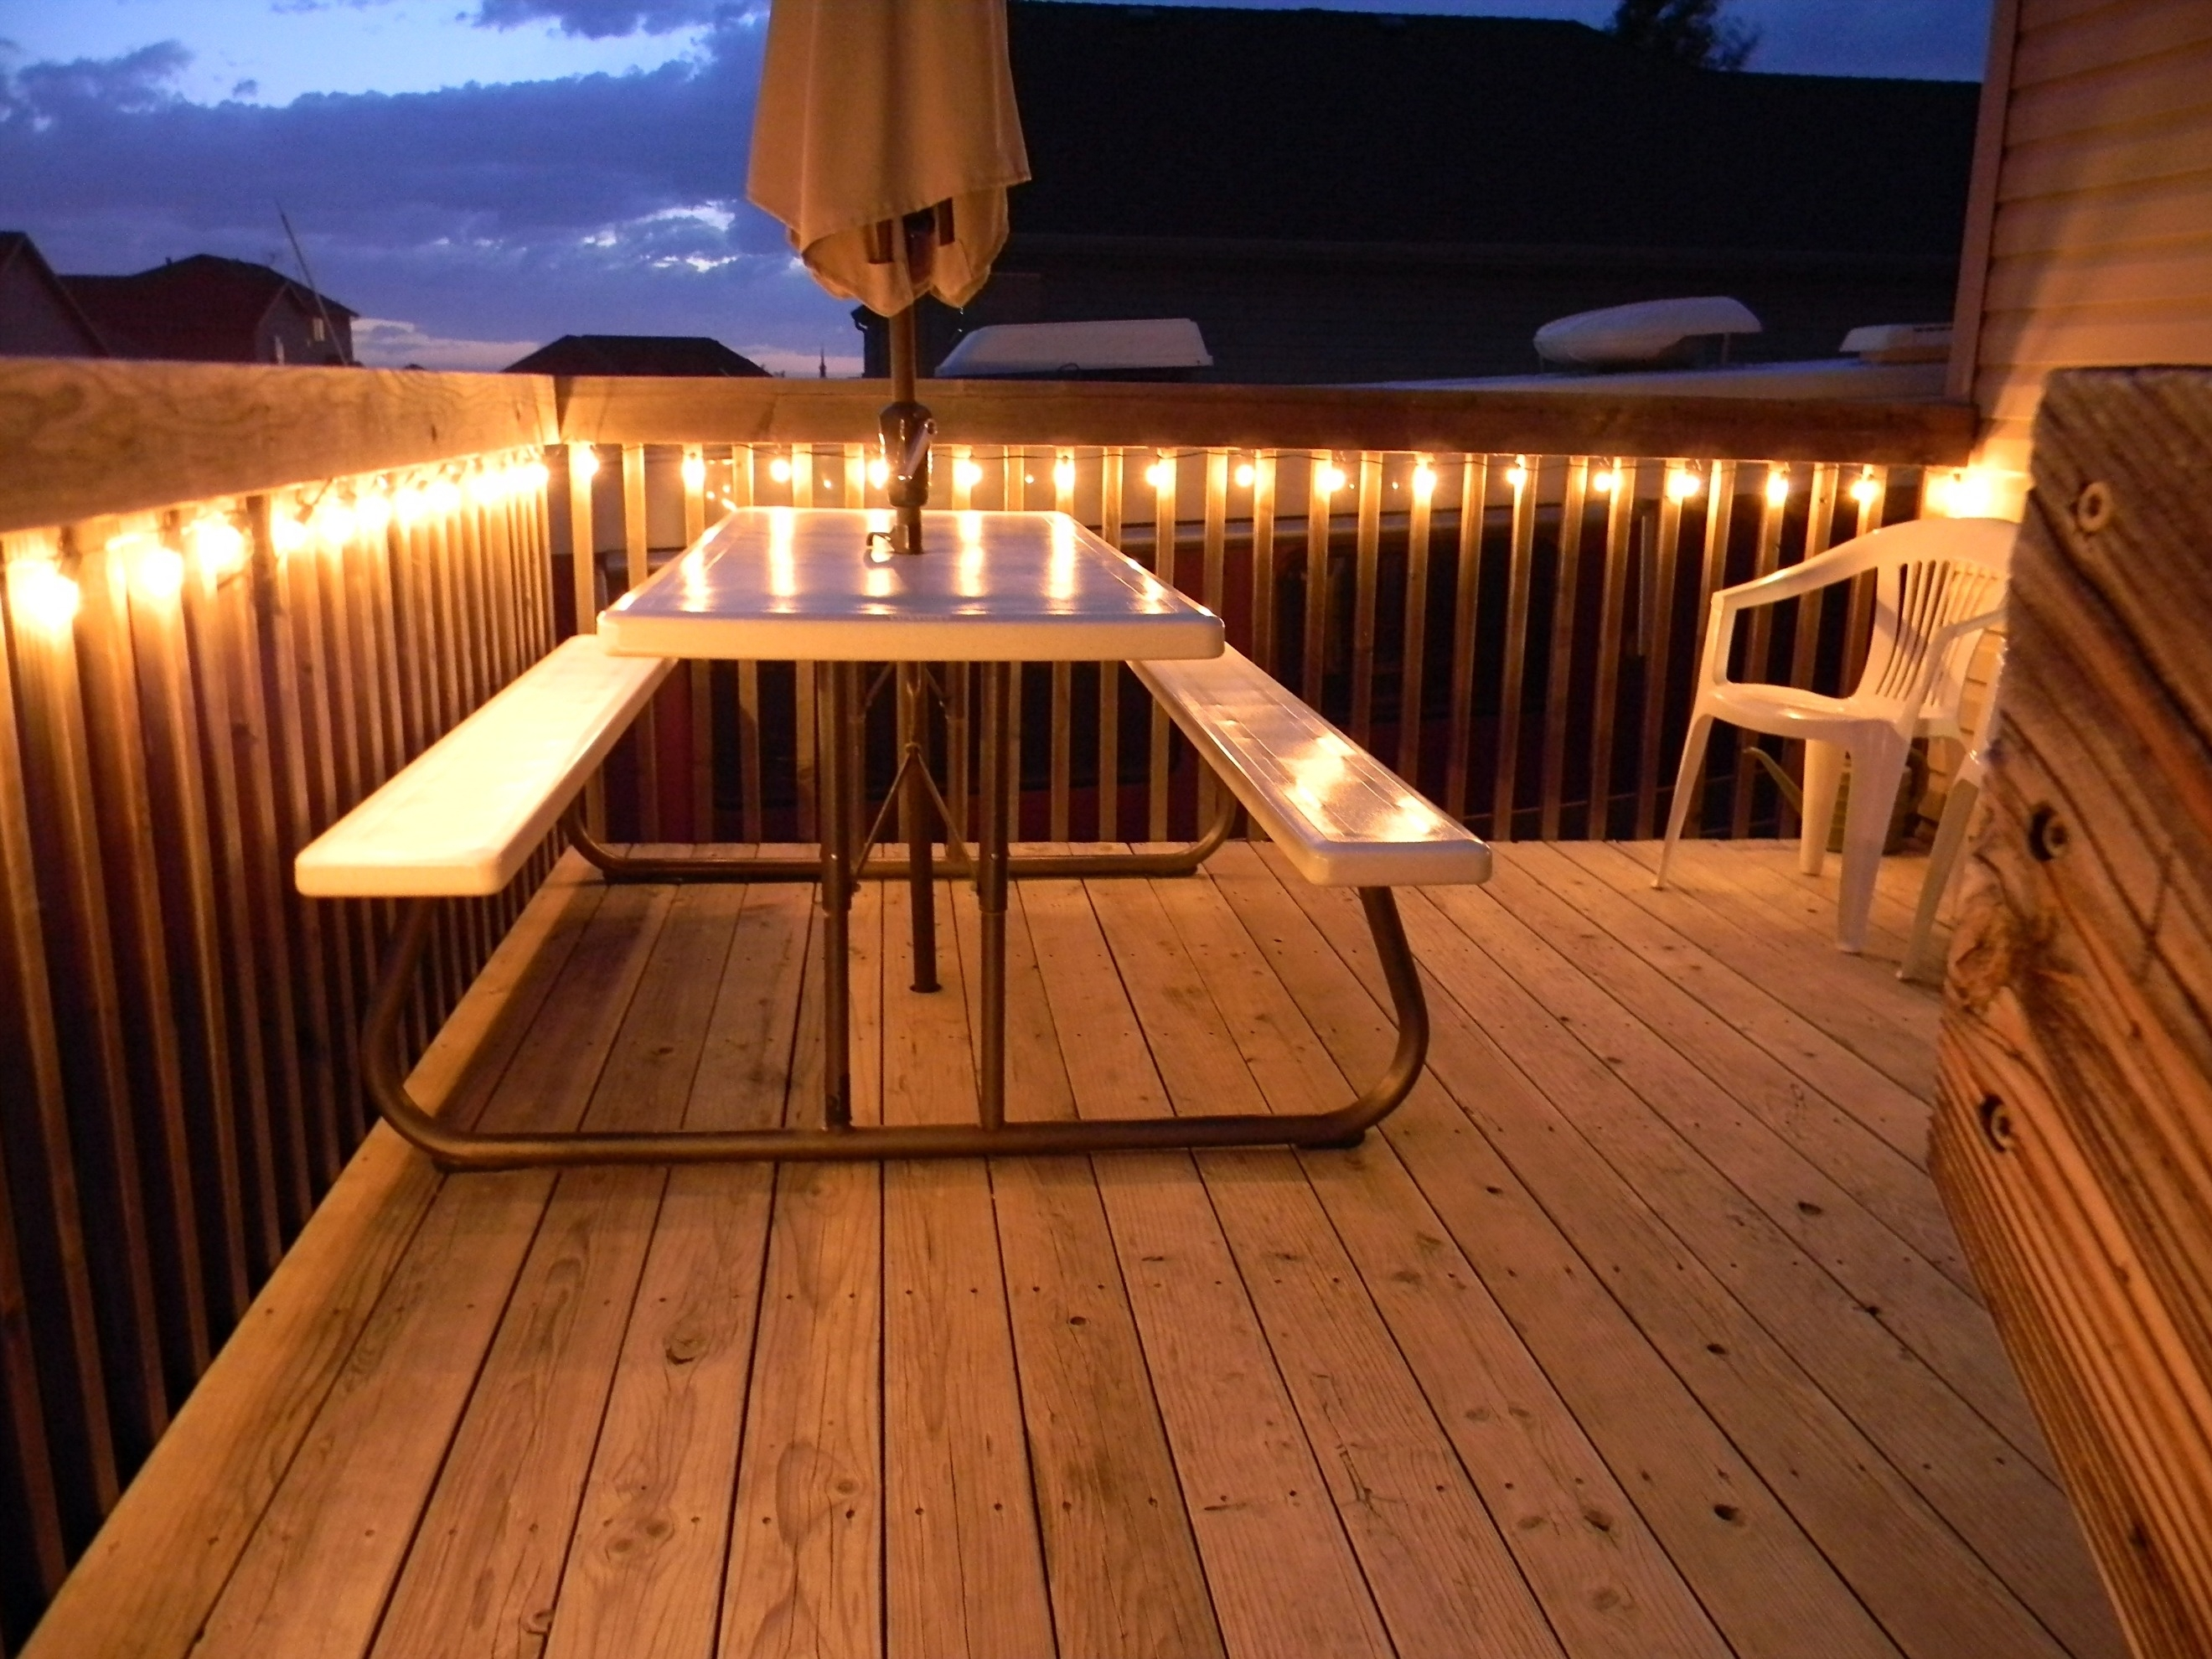 Cheap Outdoor Teak Furniture Design For Wooden Decks With Unique Pertaining To Outdoor Lanterns For Deck (View 9 of 20)